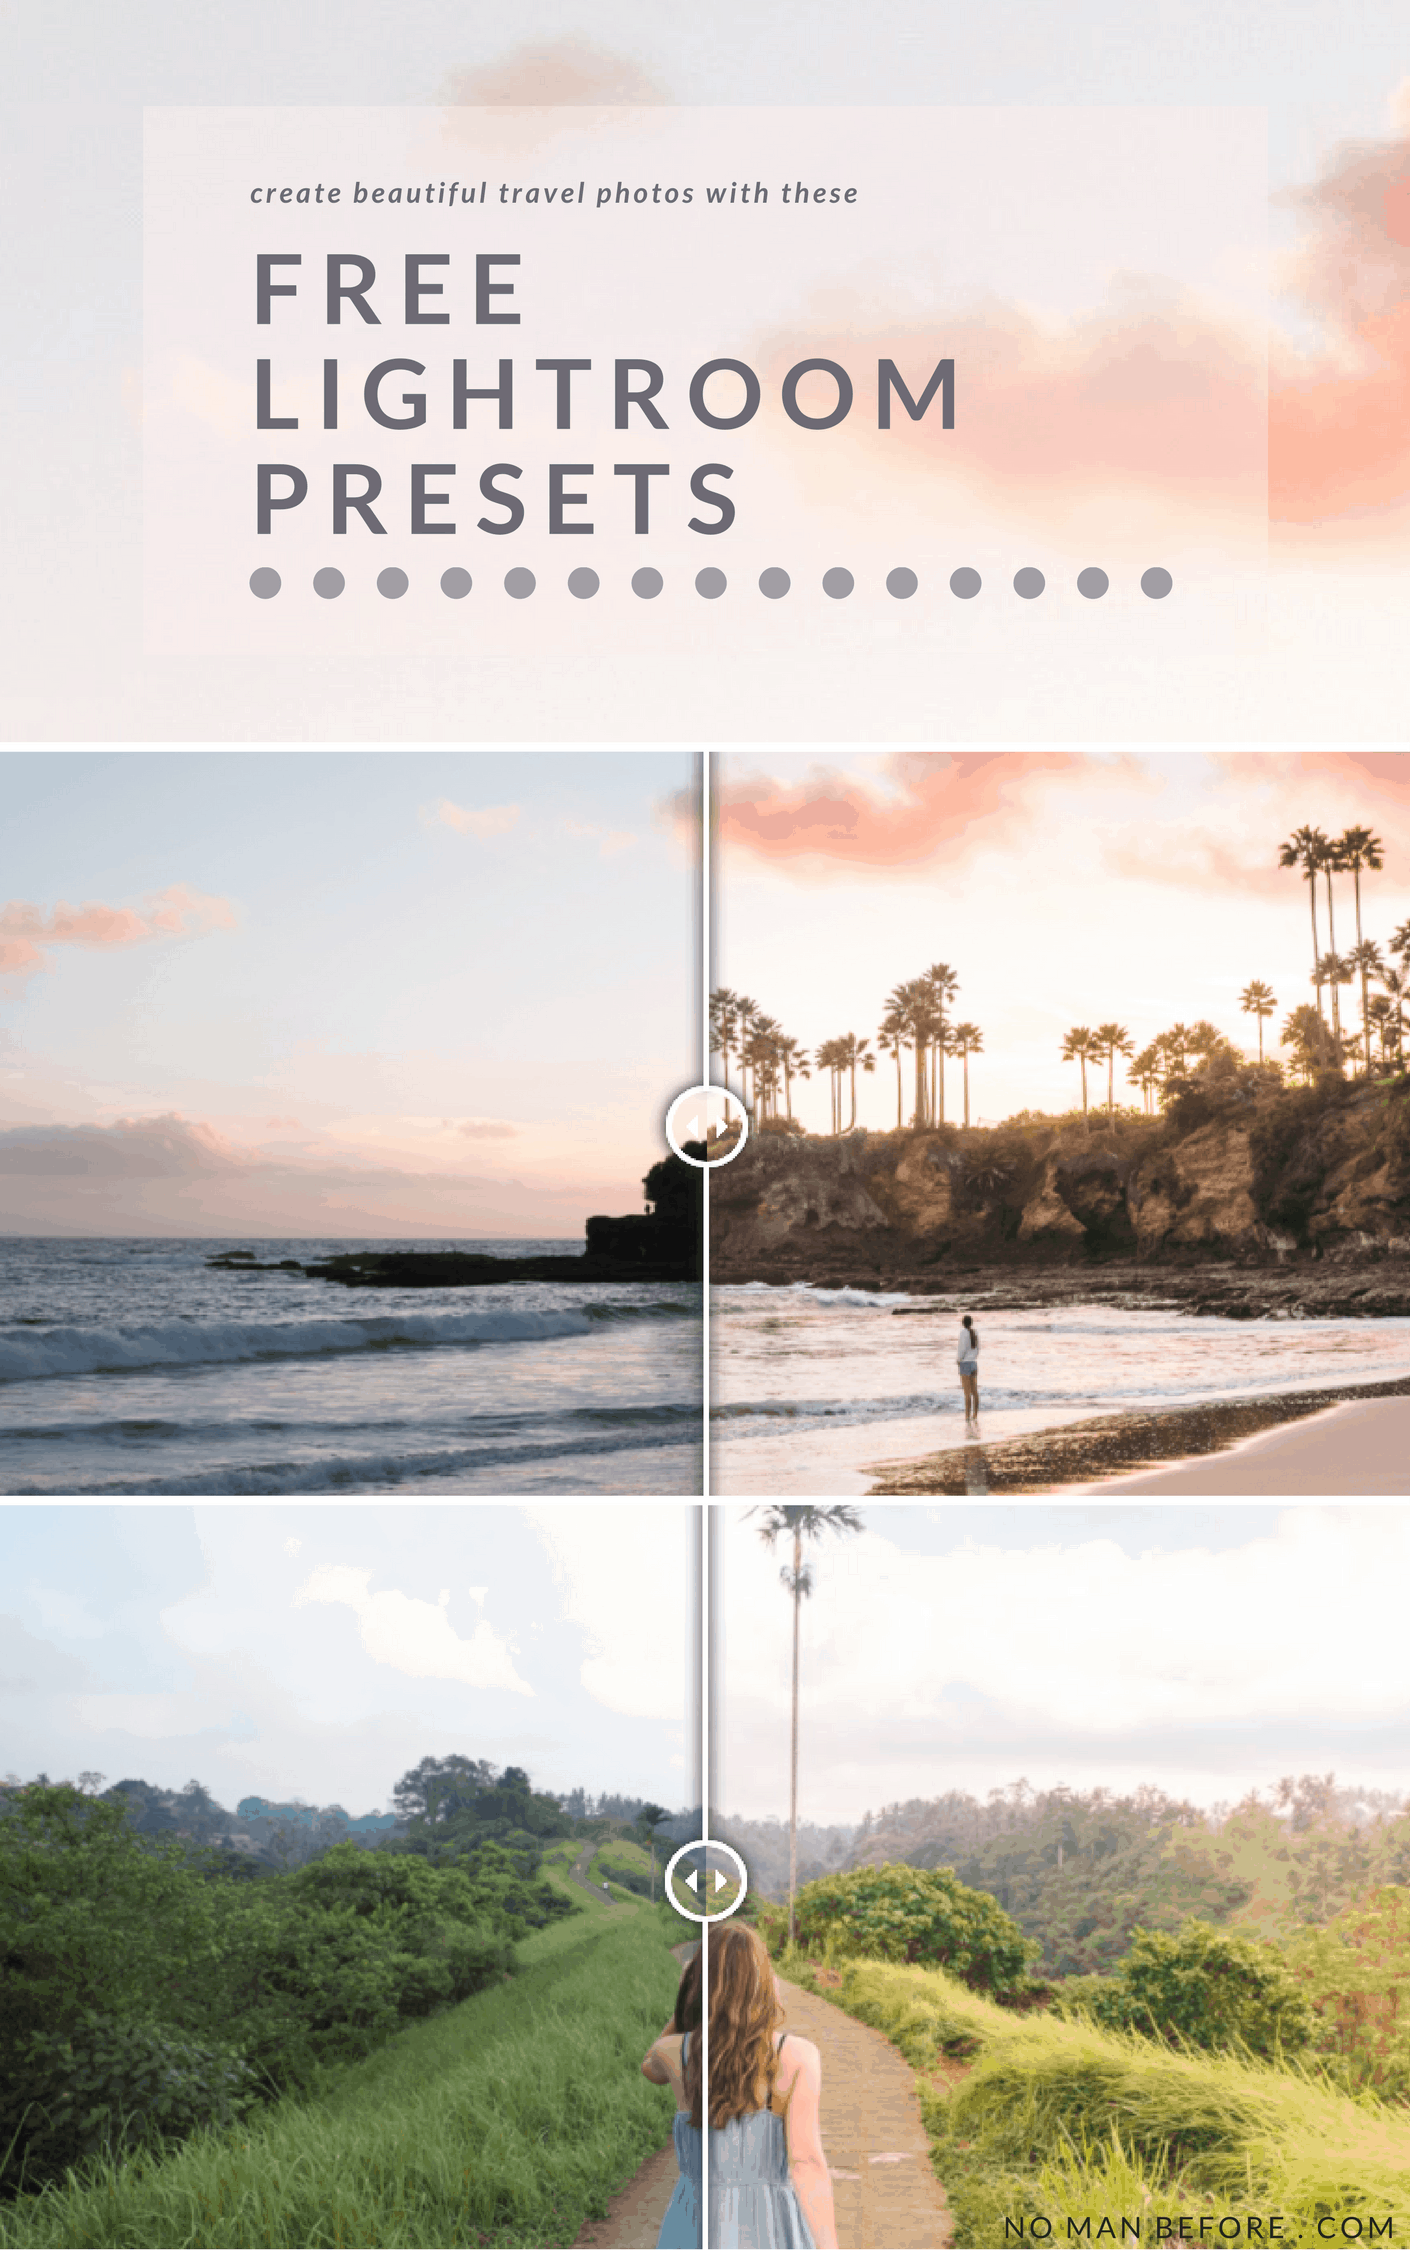 Need a little help making your photos pop? Download our Free Adobe Lightroom presets for travel photos! #travel #photography #preset #lightroom